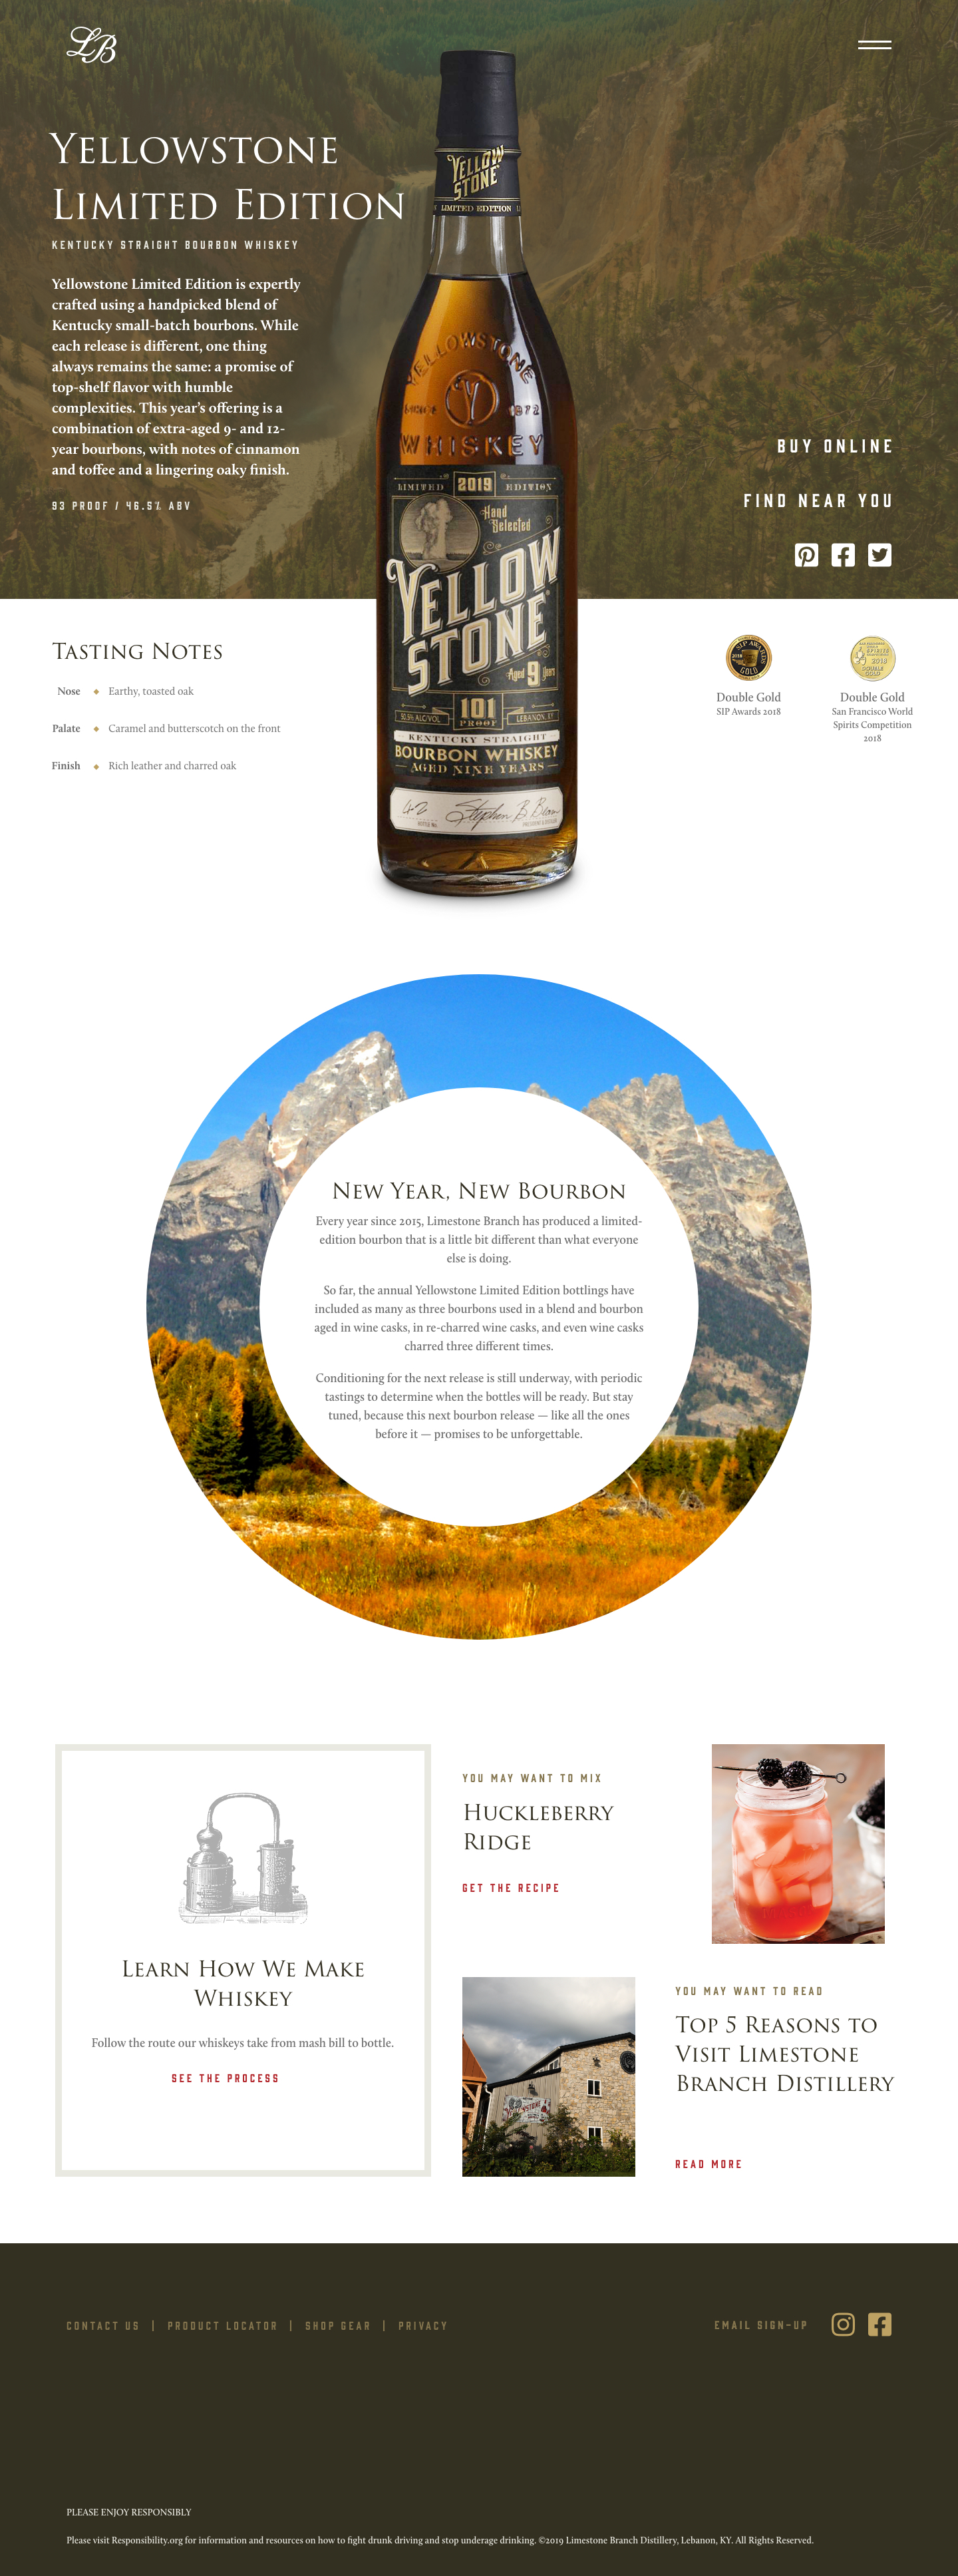 Yellowstone Bourbon Ltd Edition Product page